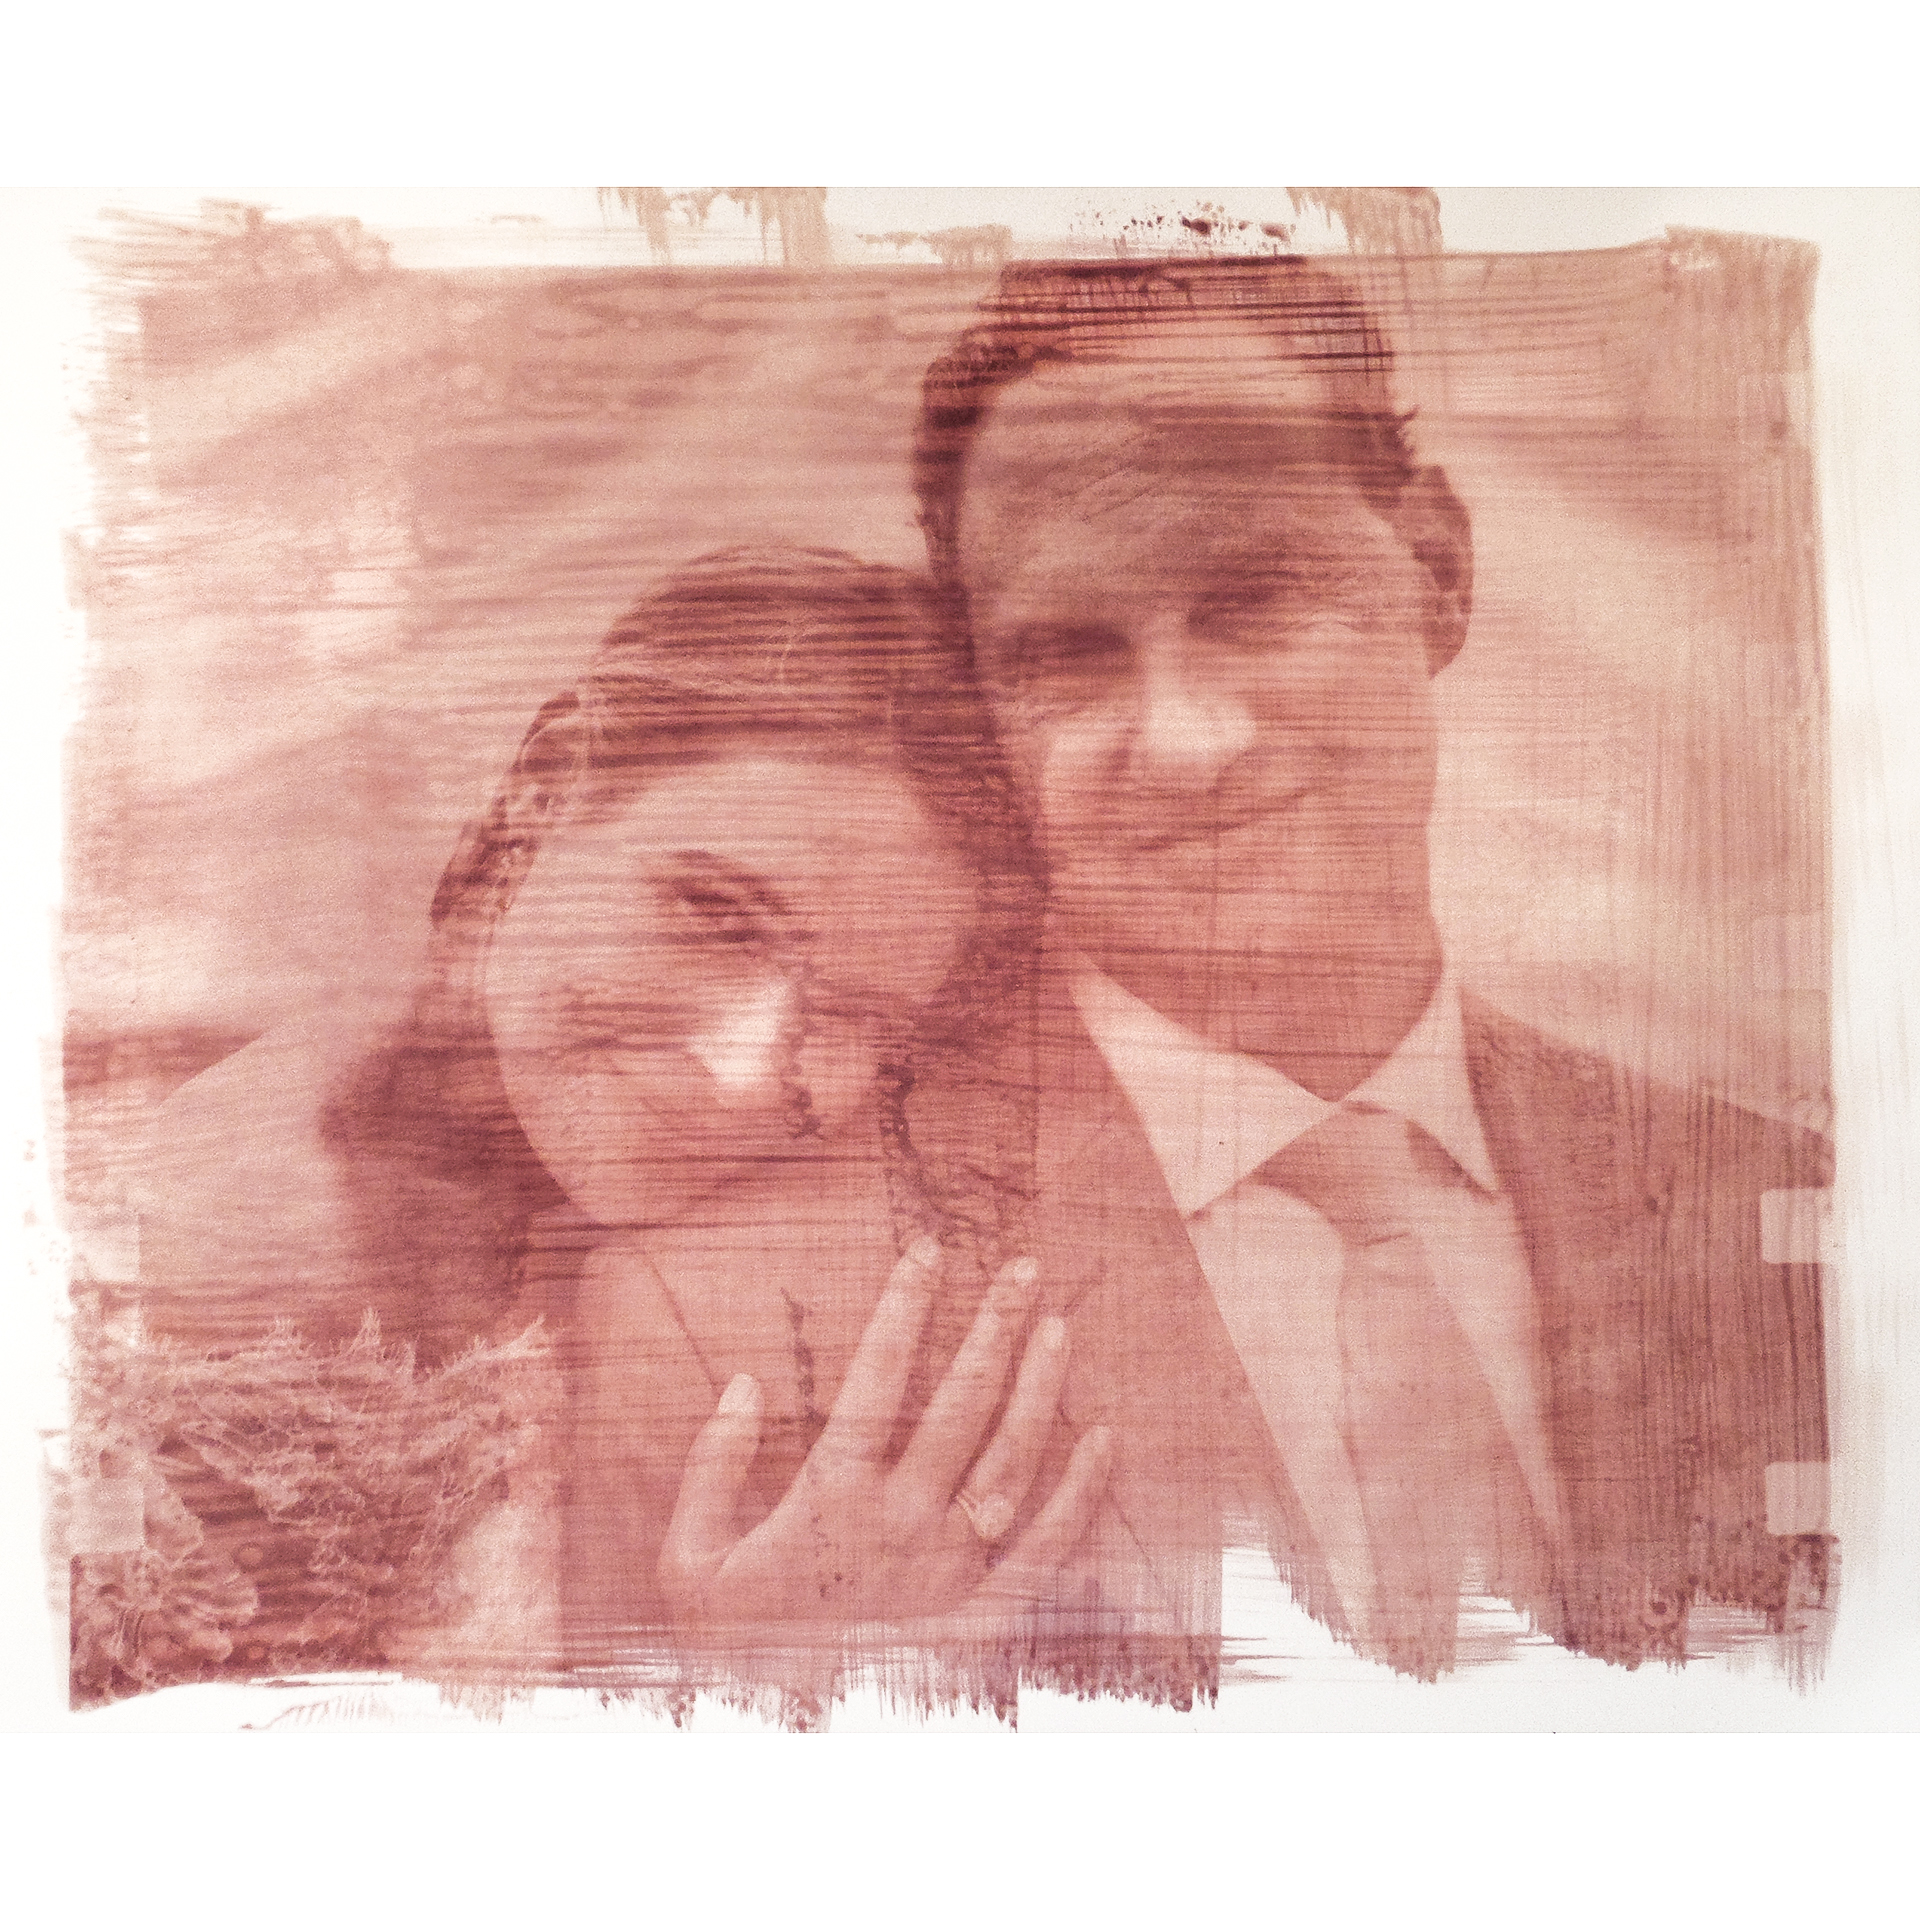 A special magenta toned contact print that we made by hand for the couple as a gift.